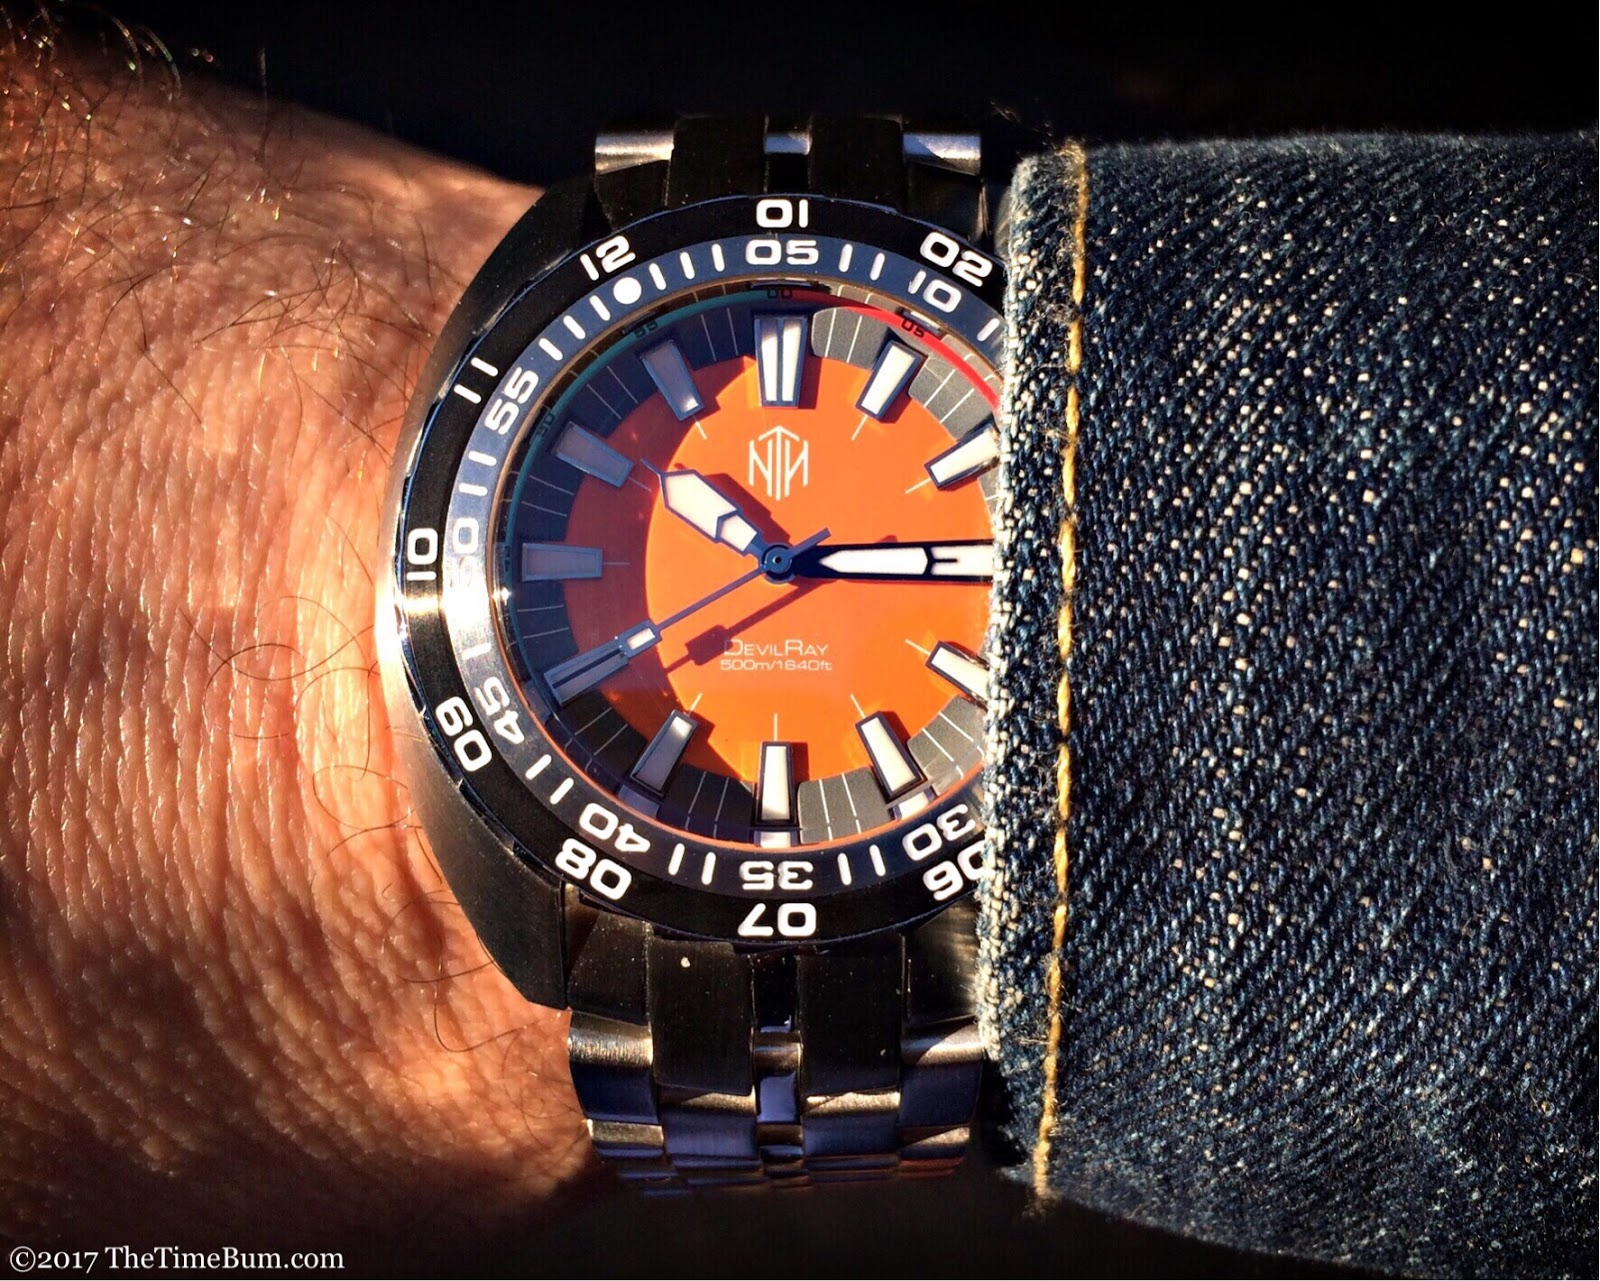 NTH DevilRay orange wrist